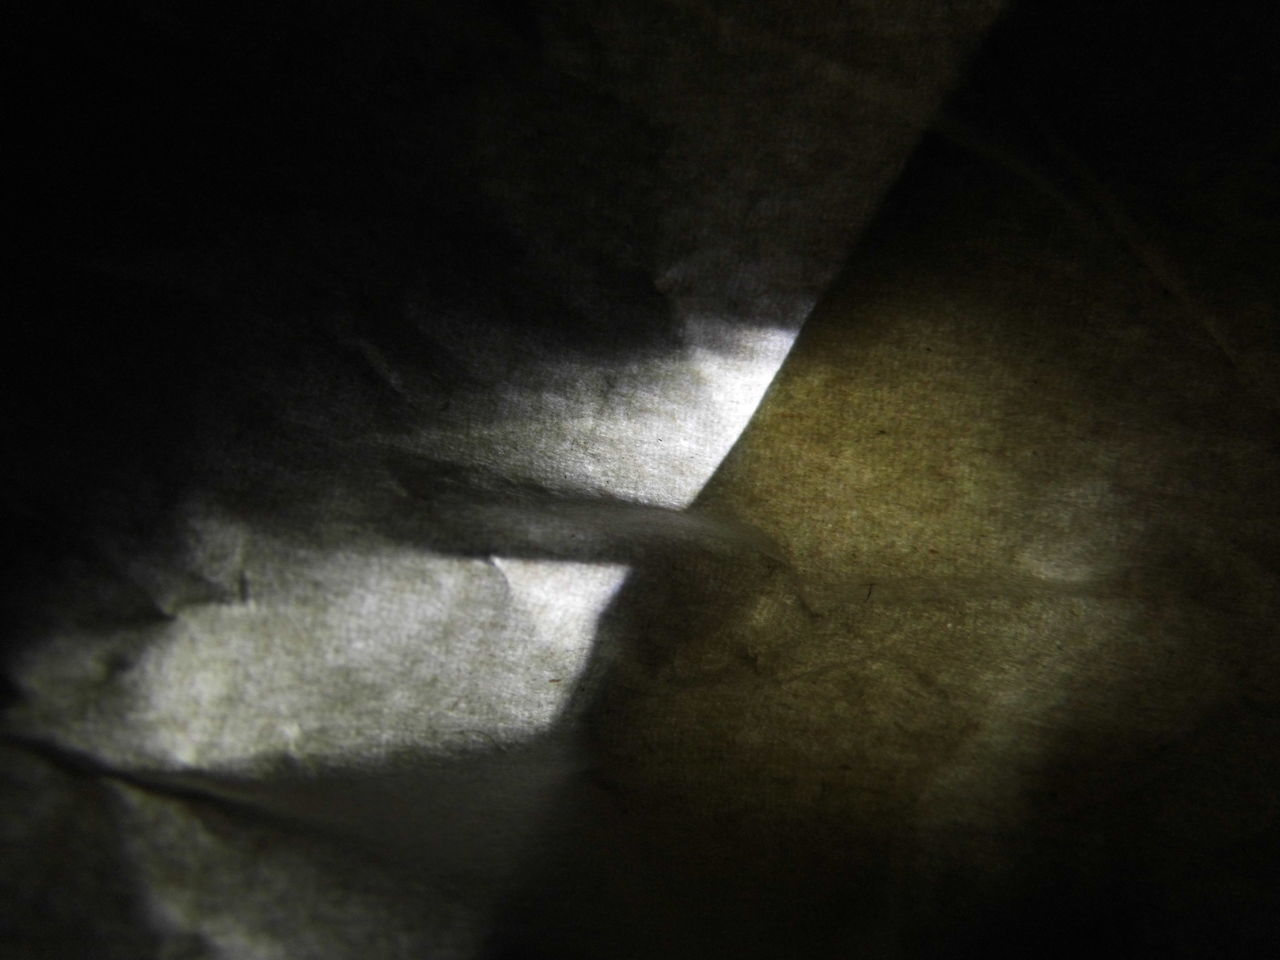 shadow, no people, indoors, backgrounds, day, close-up